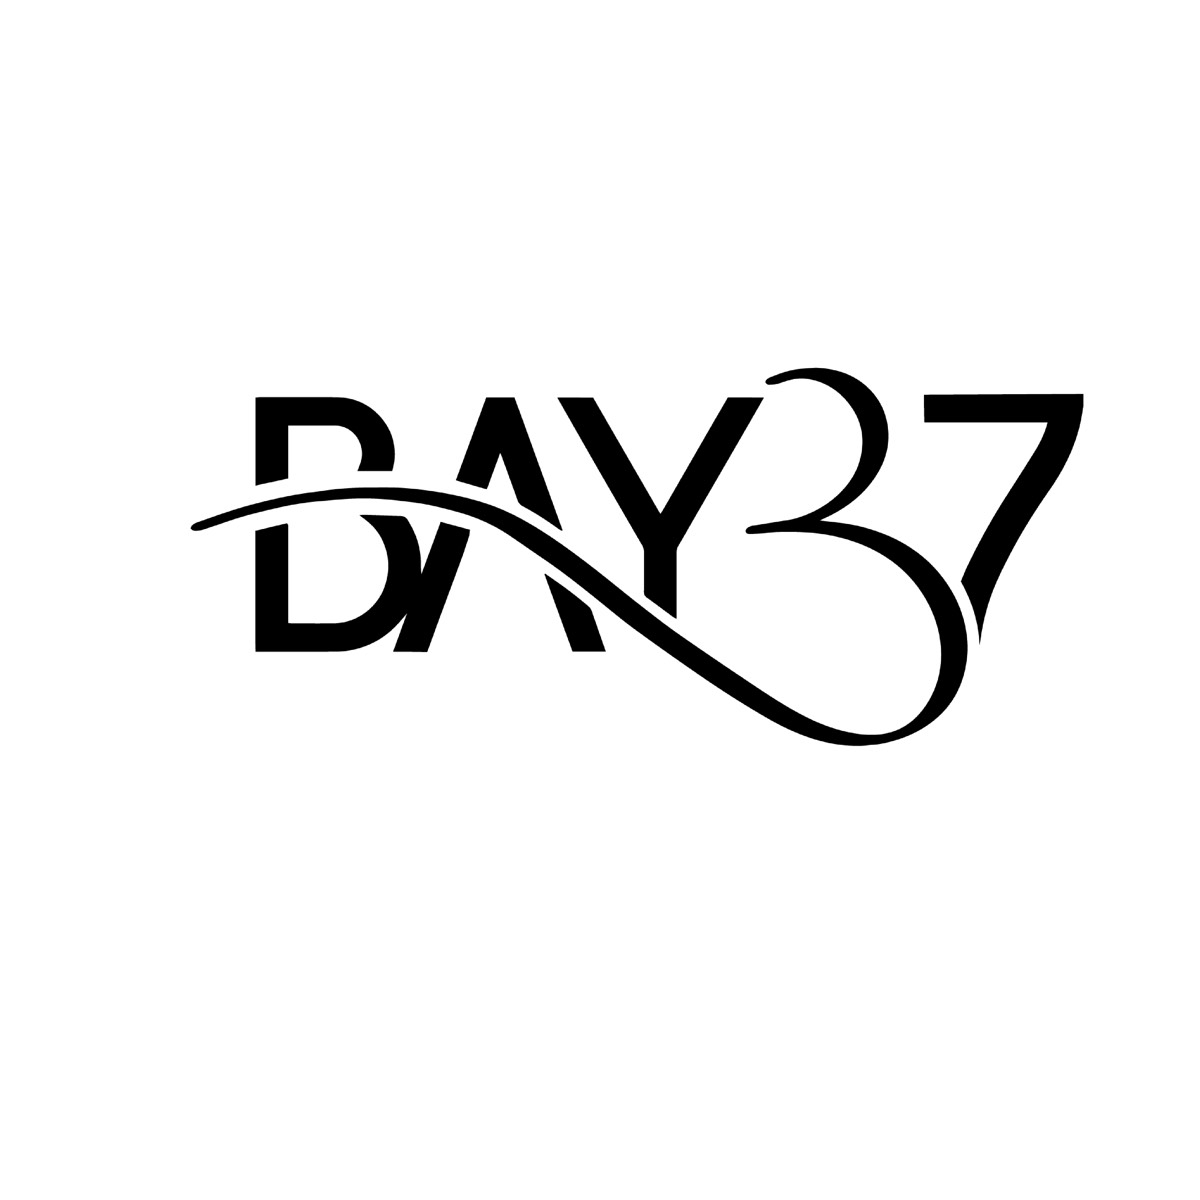 Bump profile picture for @bay37